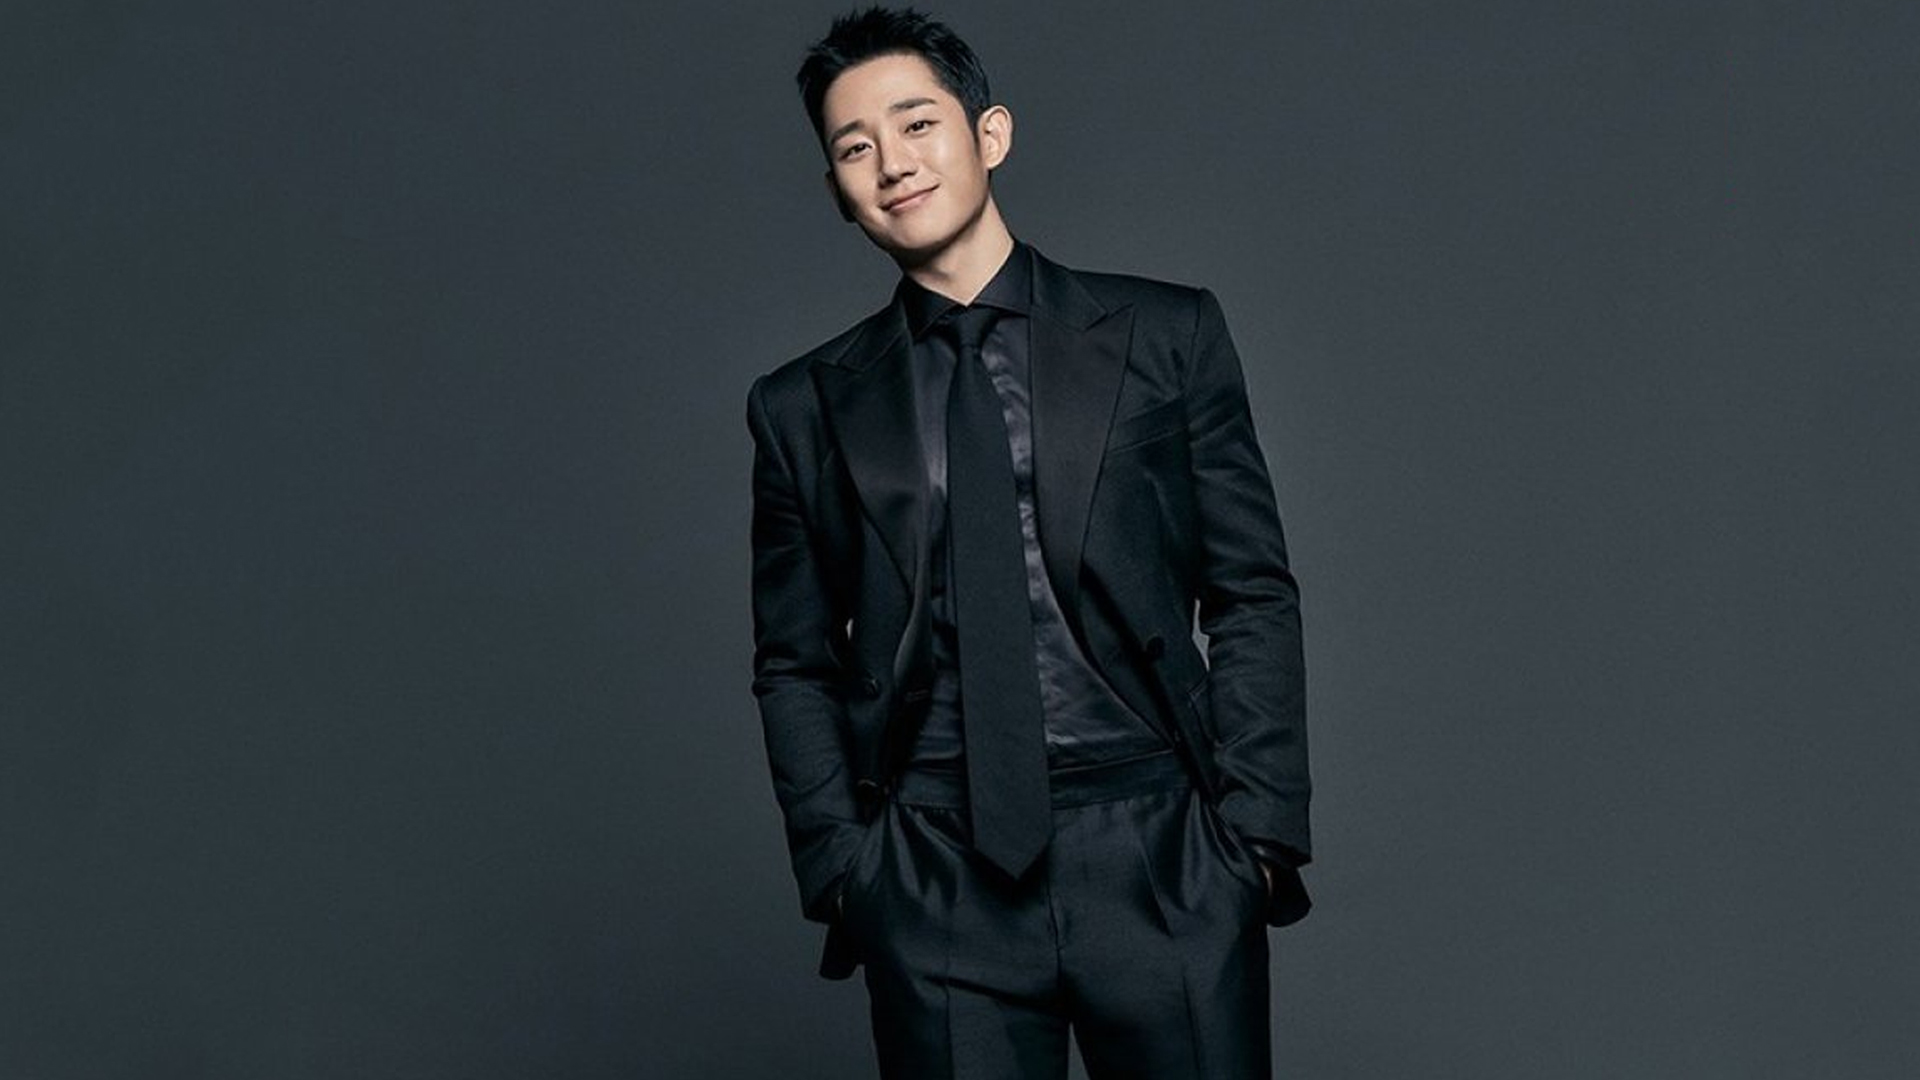 Jung Hae In Connect k-drama